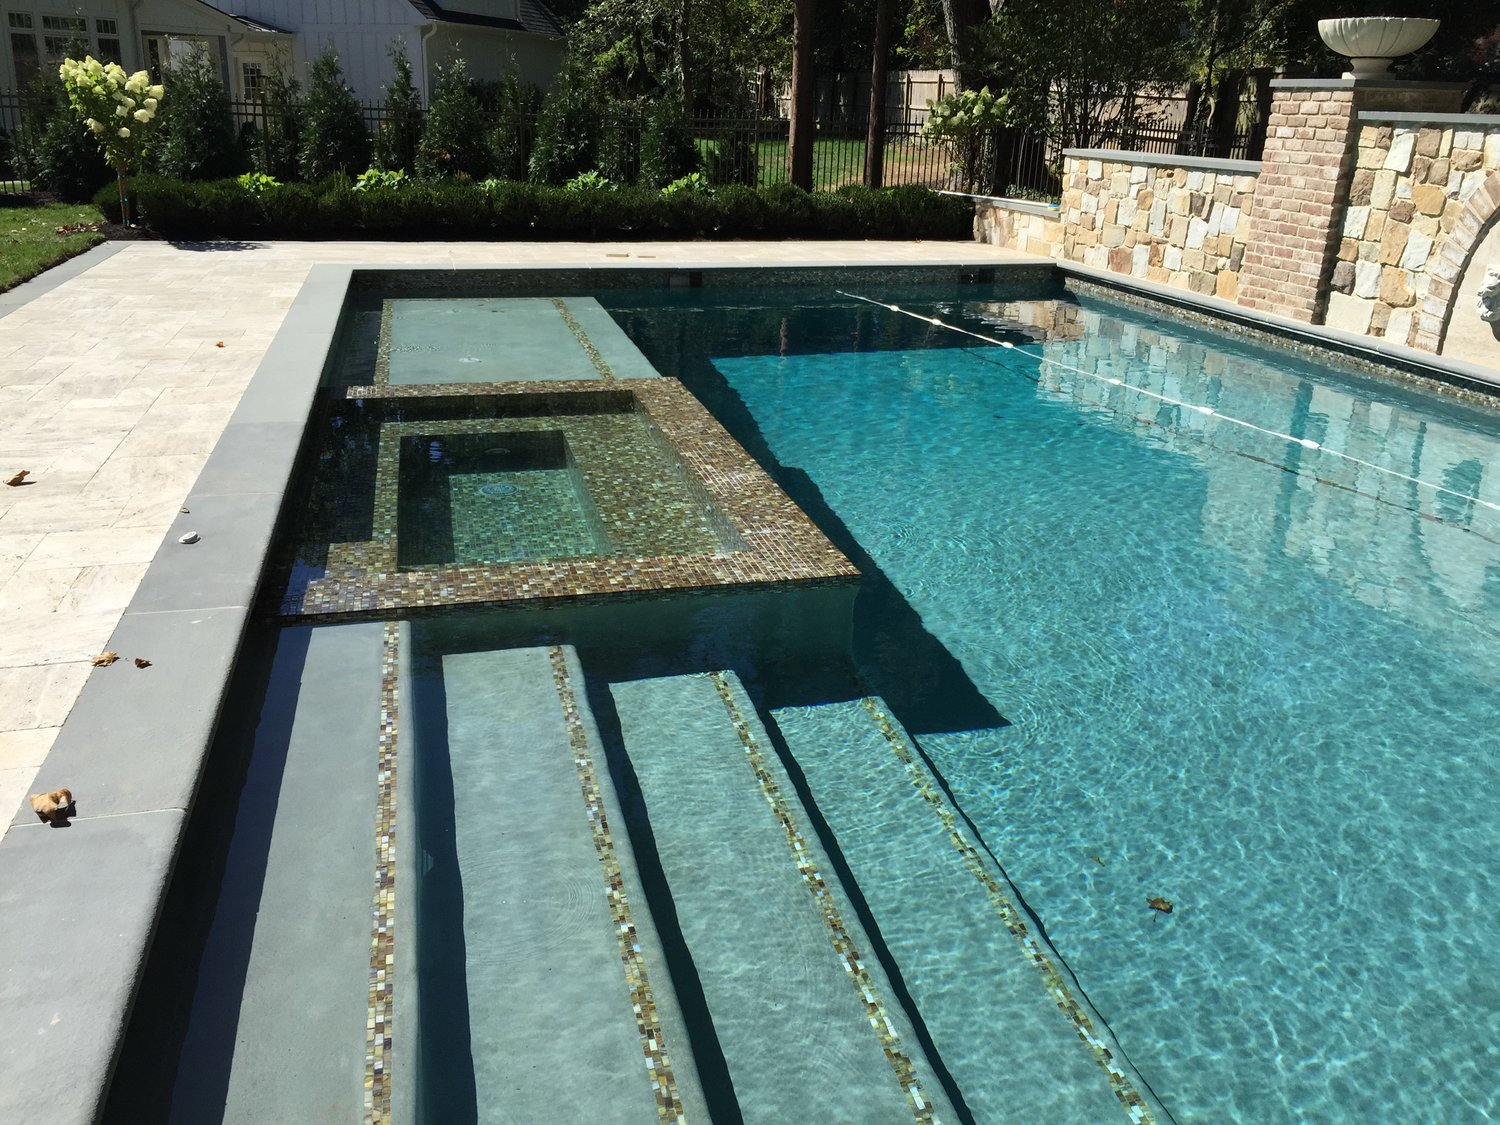 25' x 45' pool with grand entry steps - all glass tile interior spa - blue stone coping - travertine patio